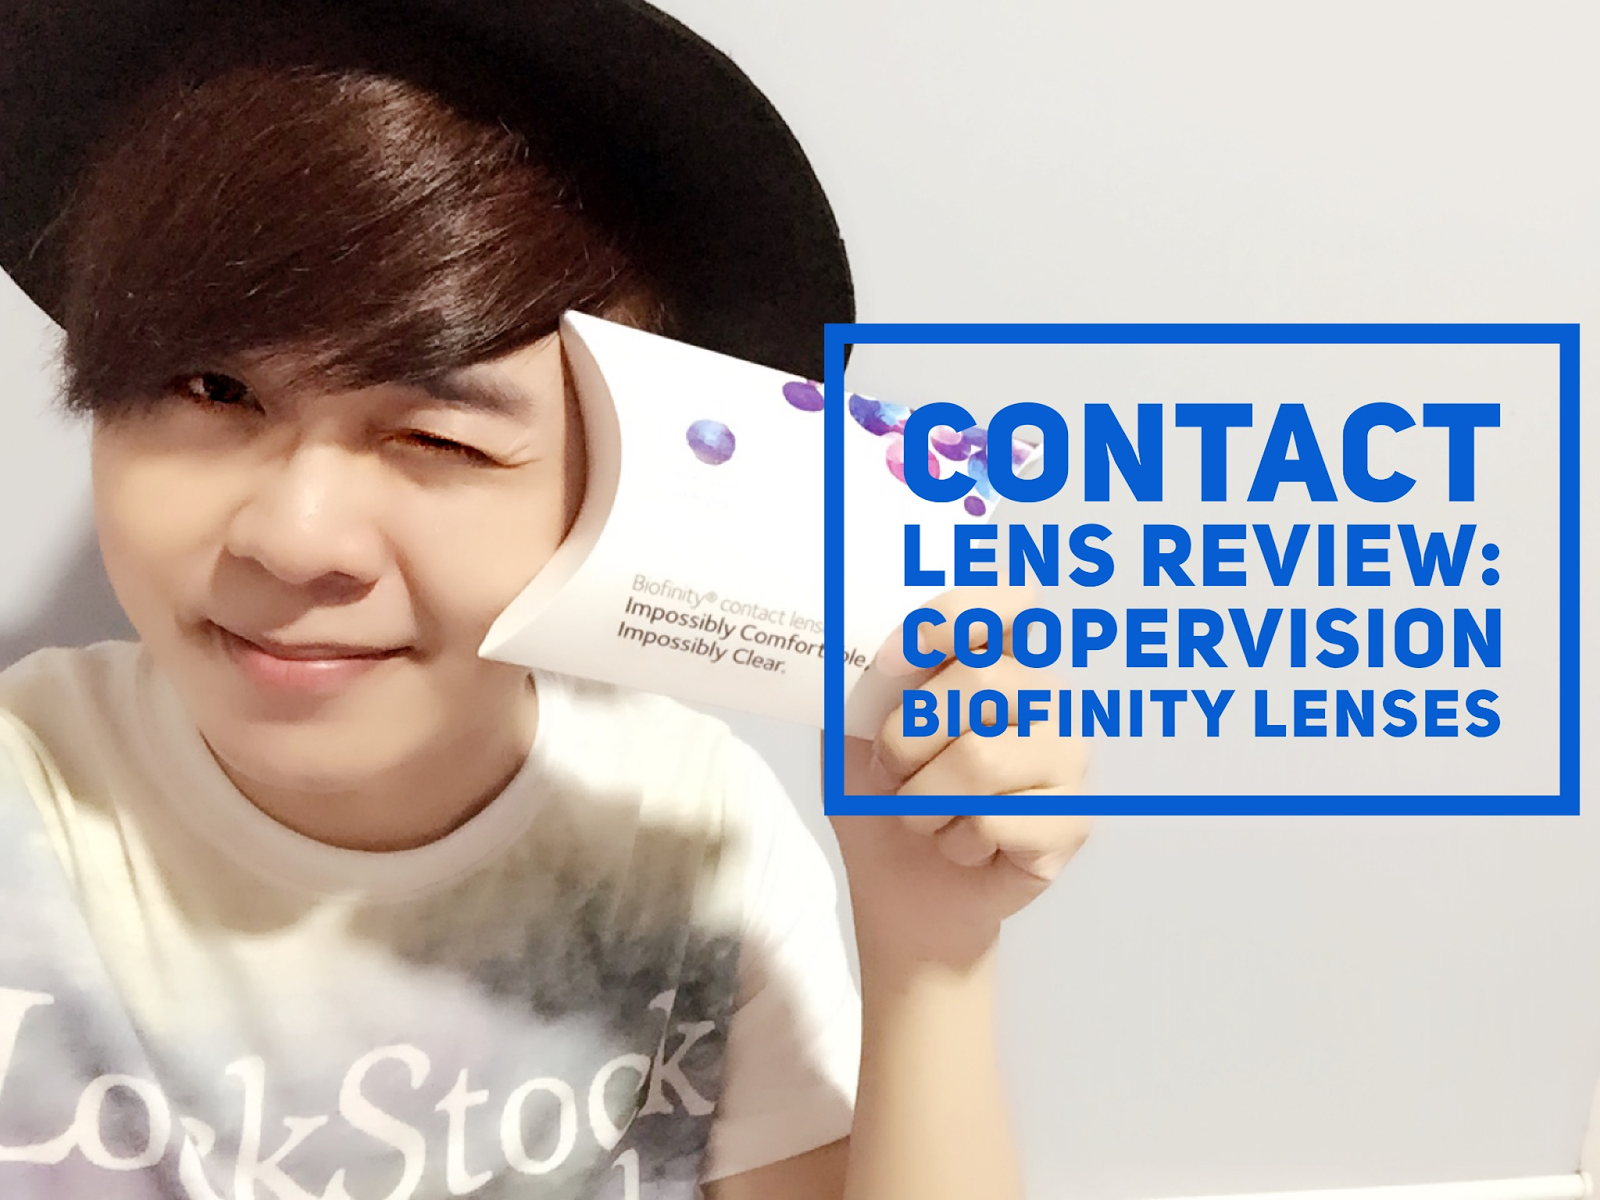 coopervision biofinity contact lenses reviews